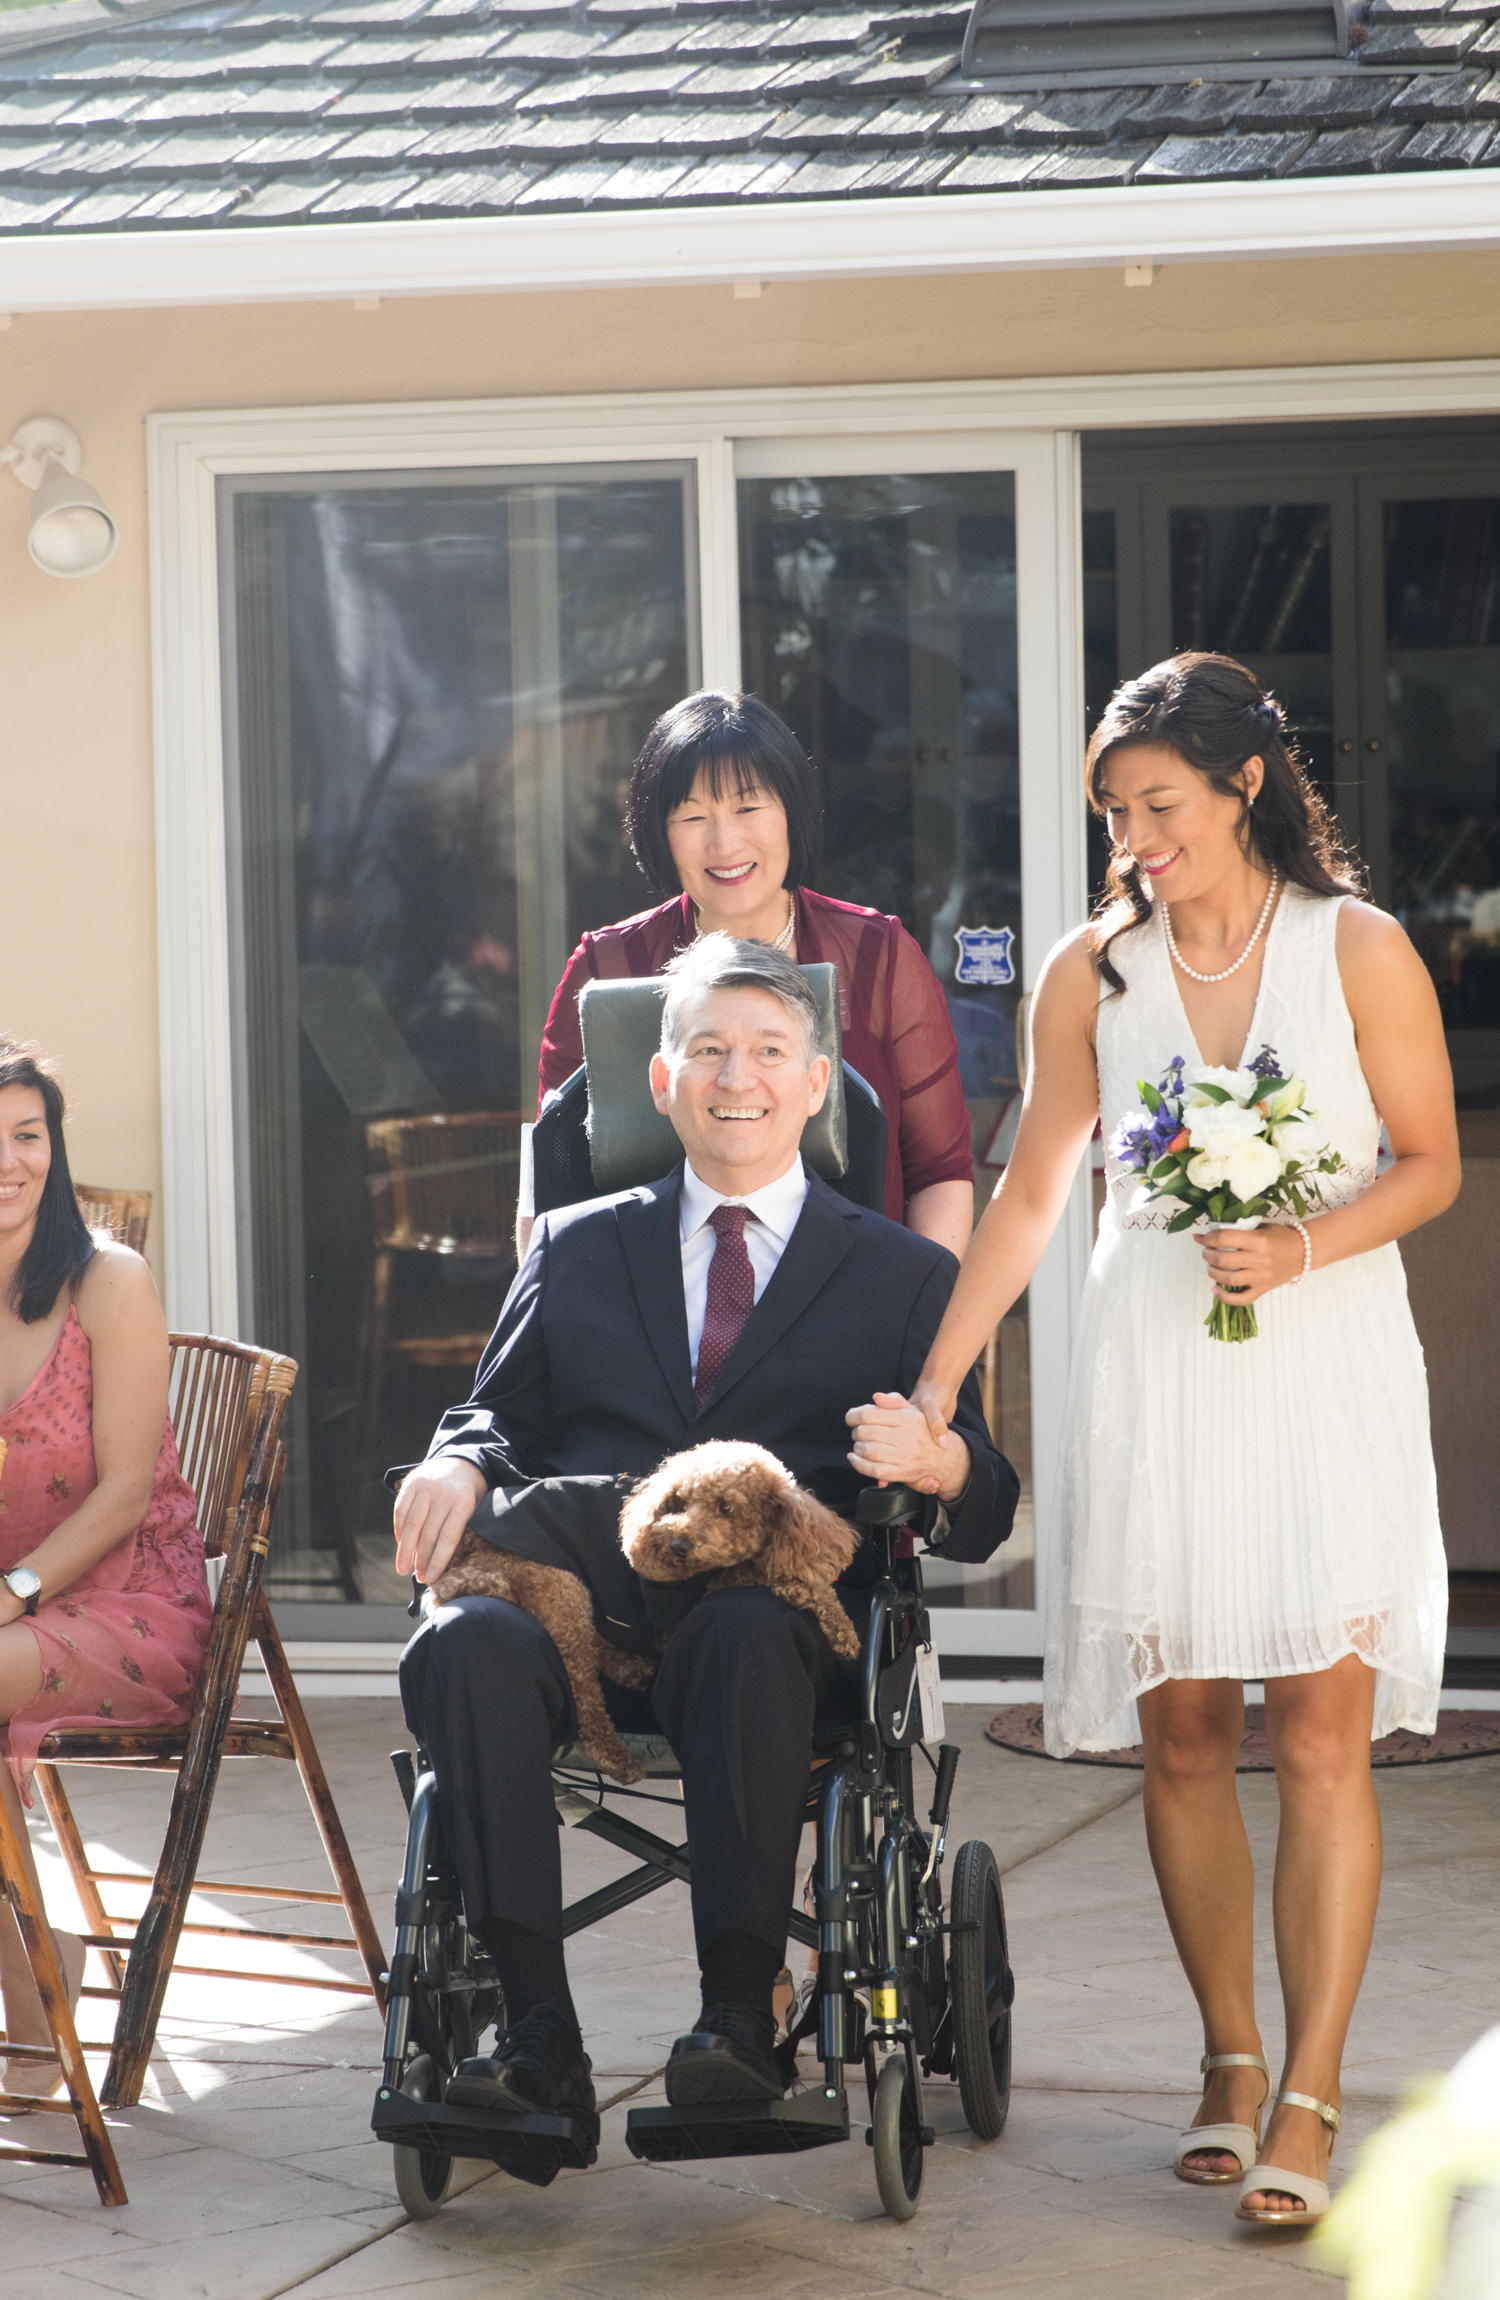 Karen Kang pushes Jon Ferraiolo as he escorts his daughter Natalie Ferraiolo down the aisle during her wedding on April 14, 2018 at their home in Palo Alto.